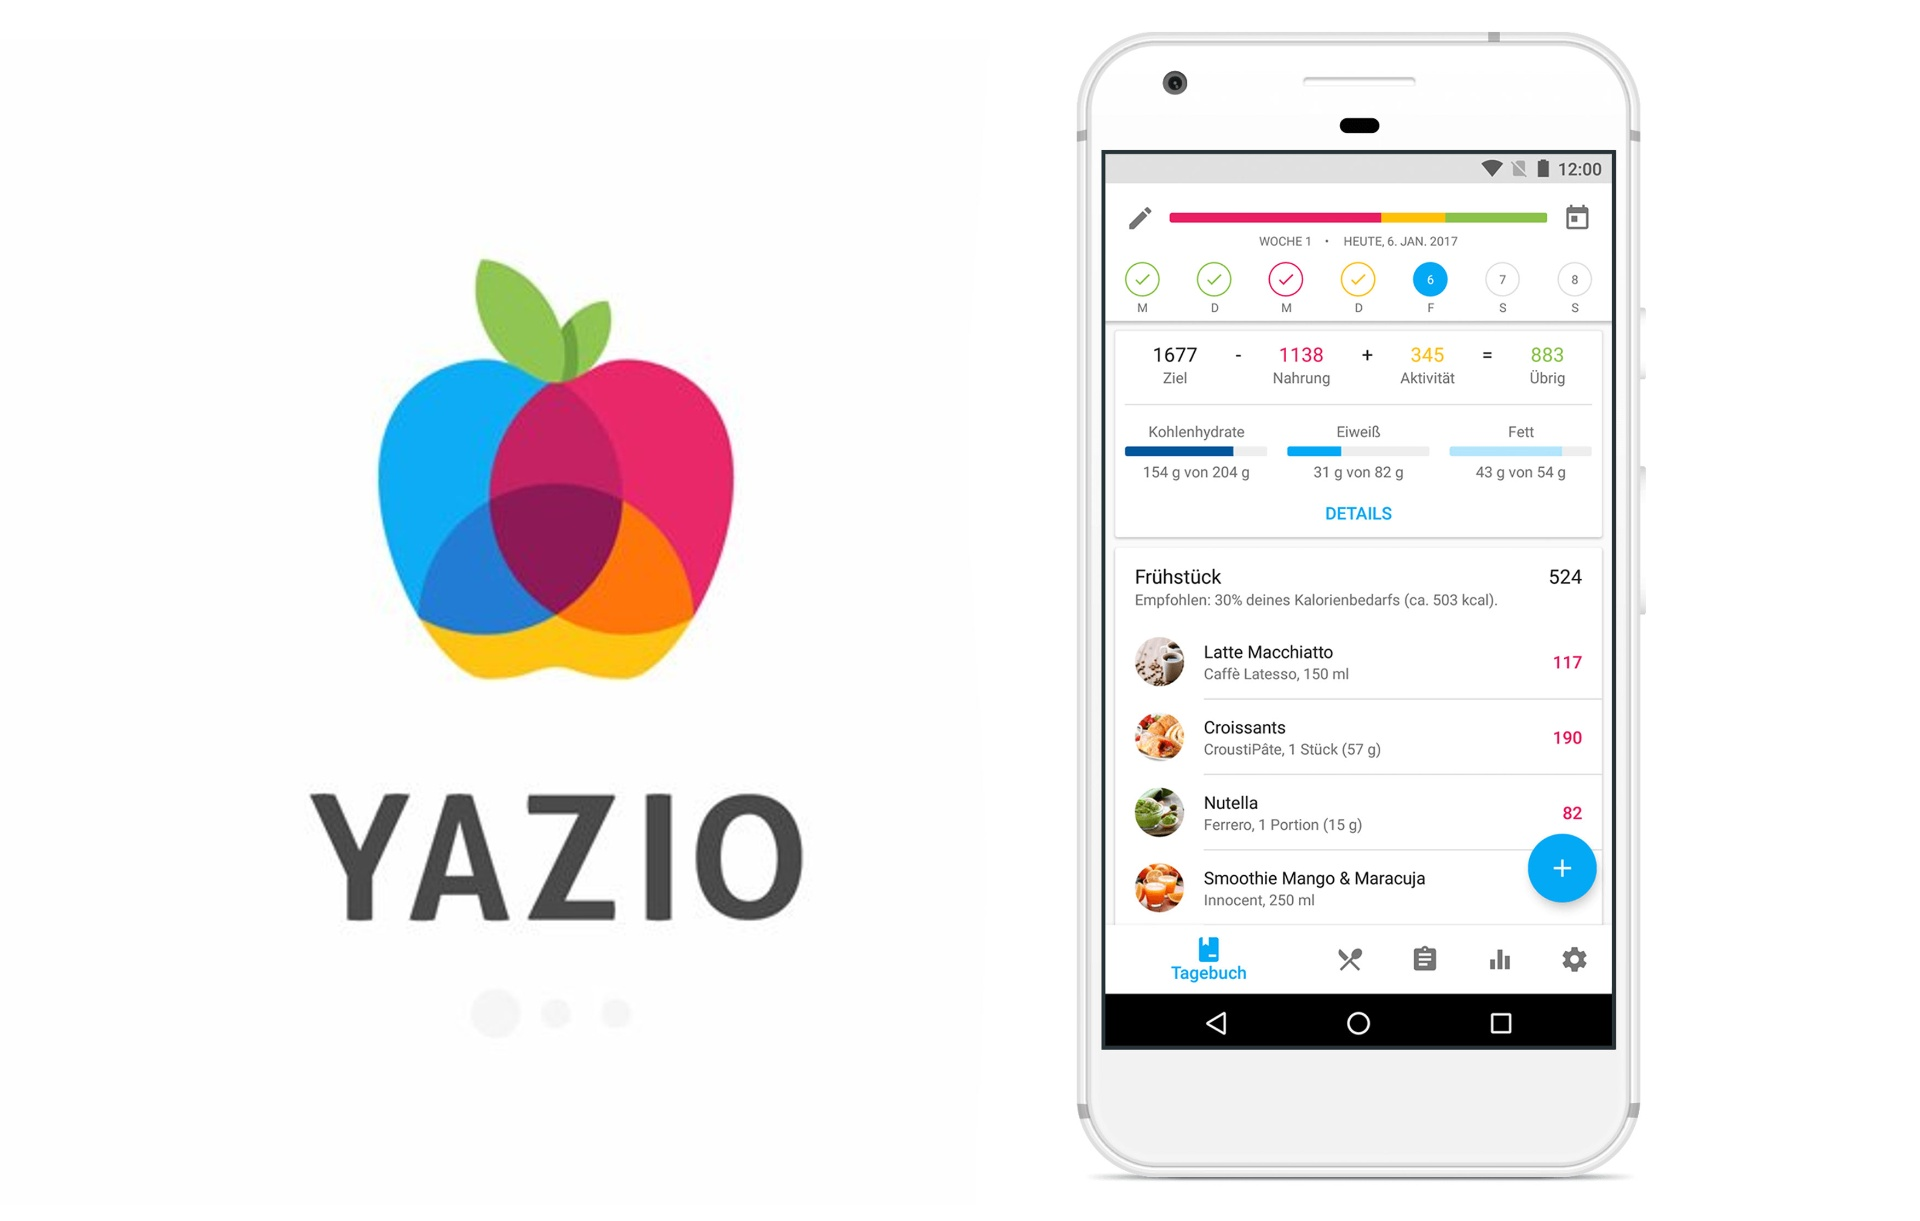 YAZIO - See How To Download This Calorie Counter